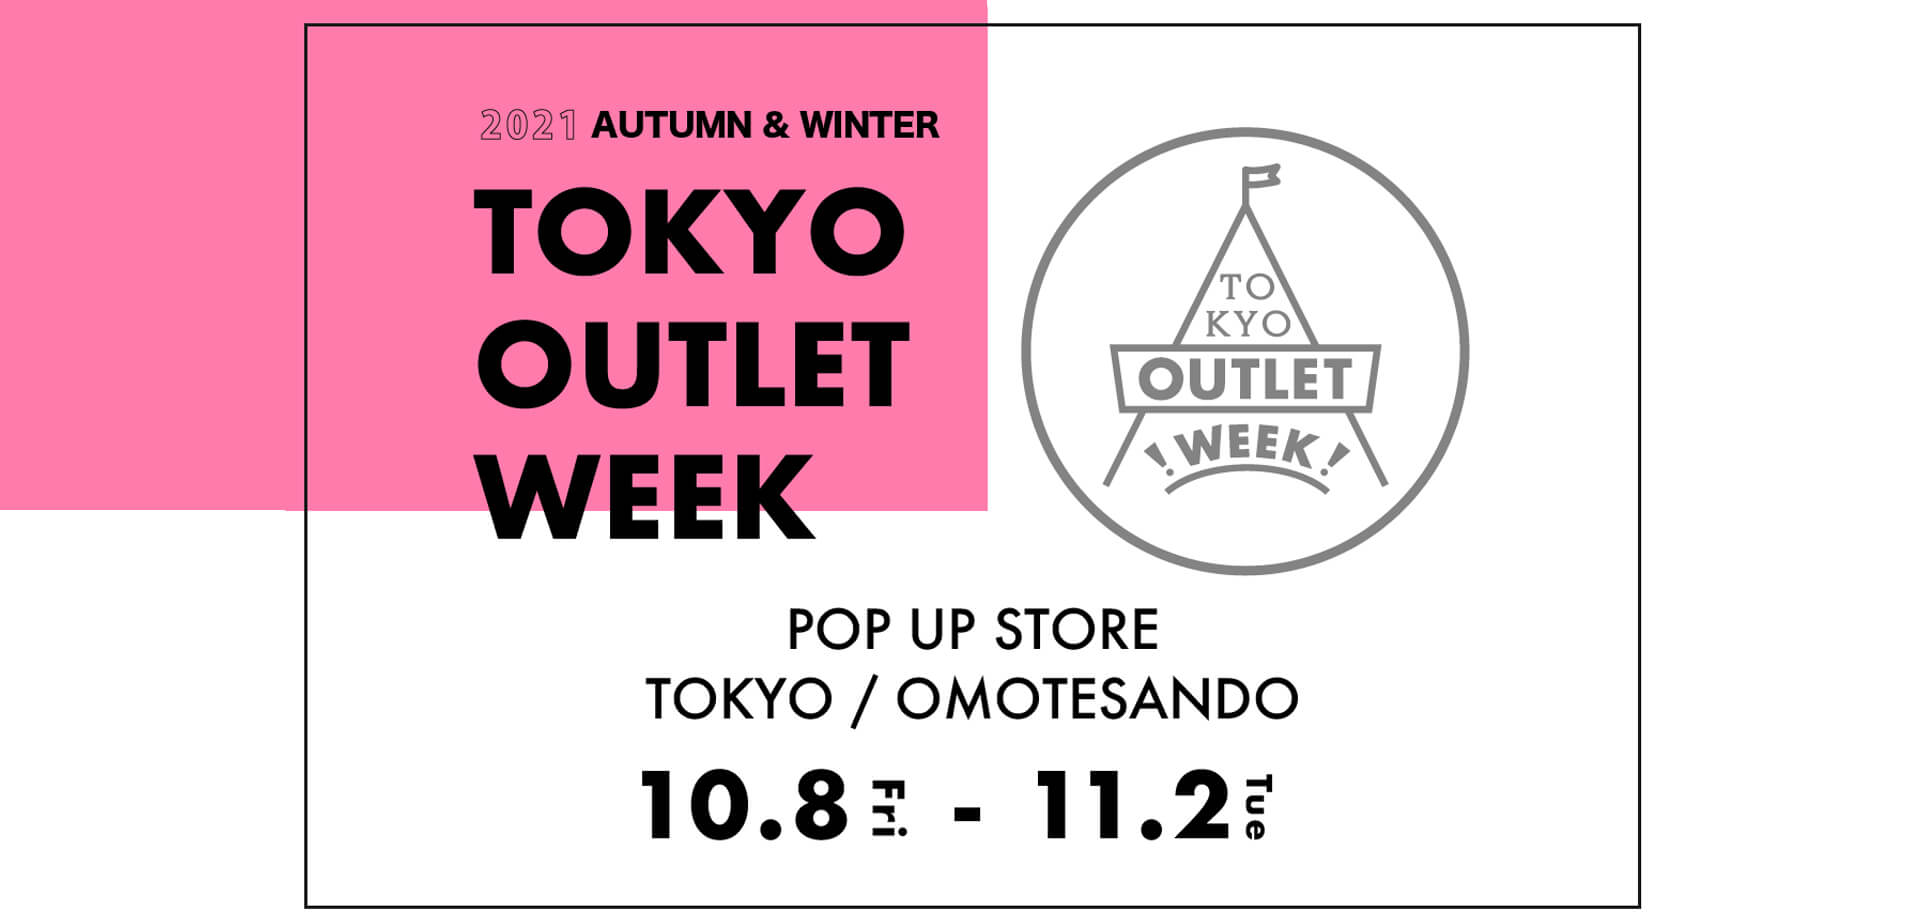 TOKYO OUTLET WEEK POPUP STORE 2021AW